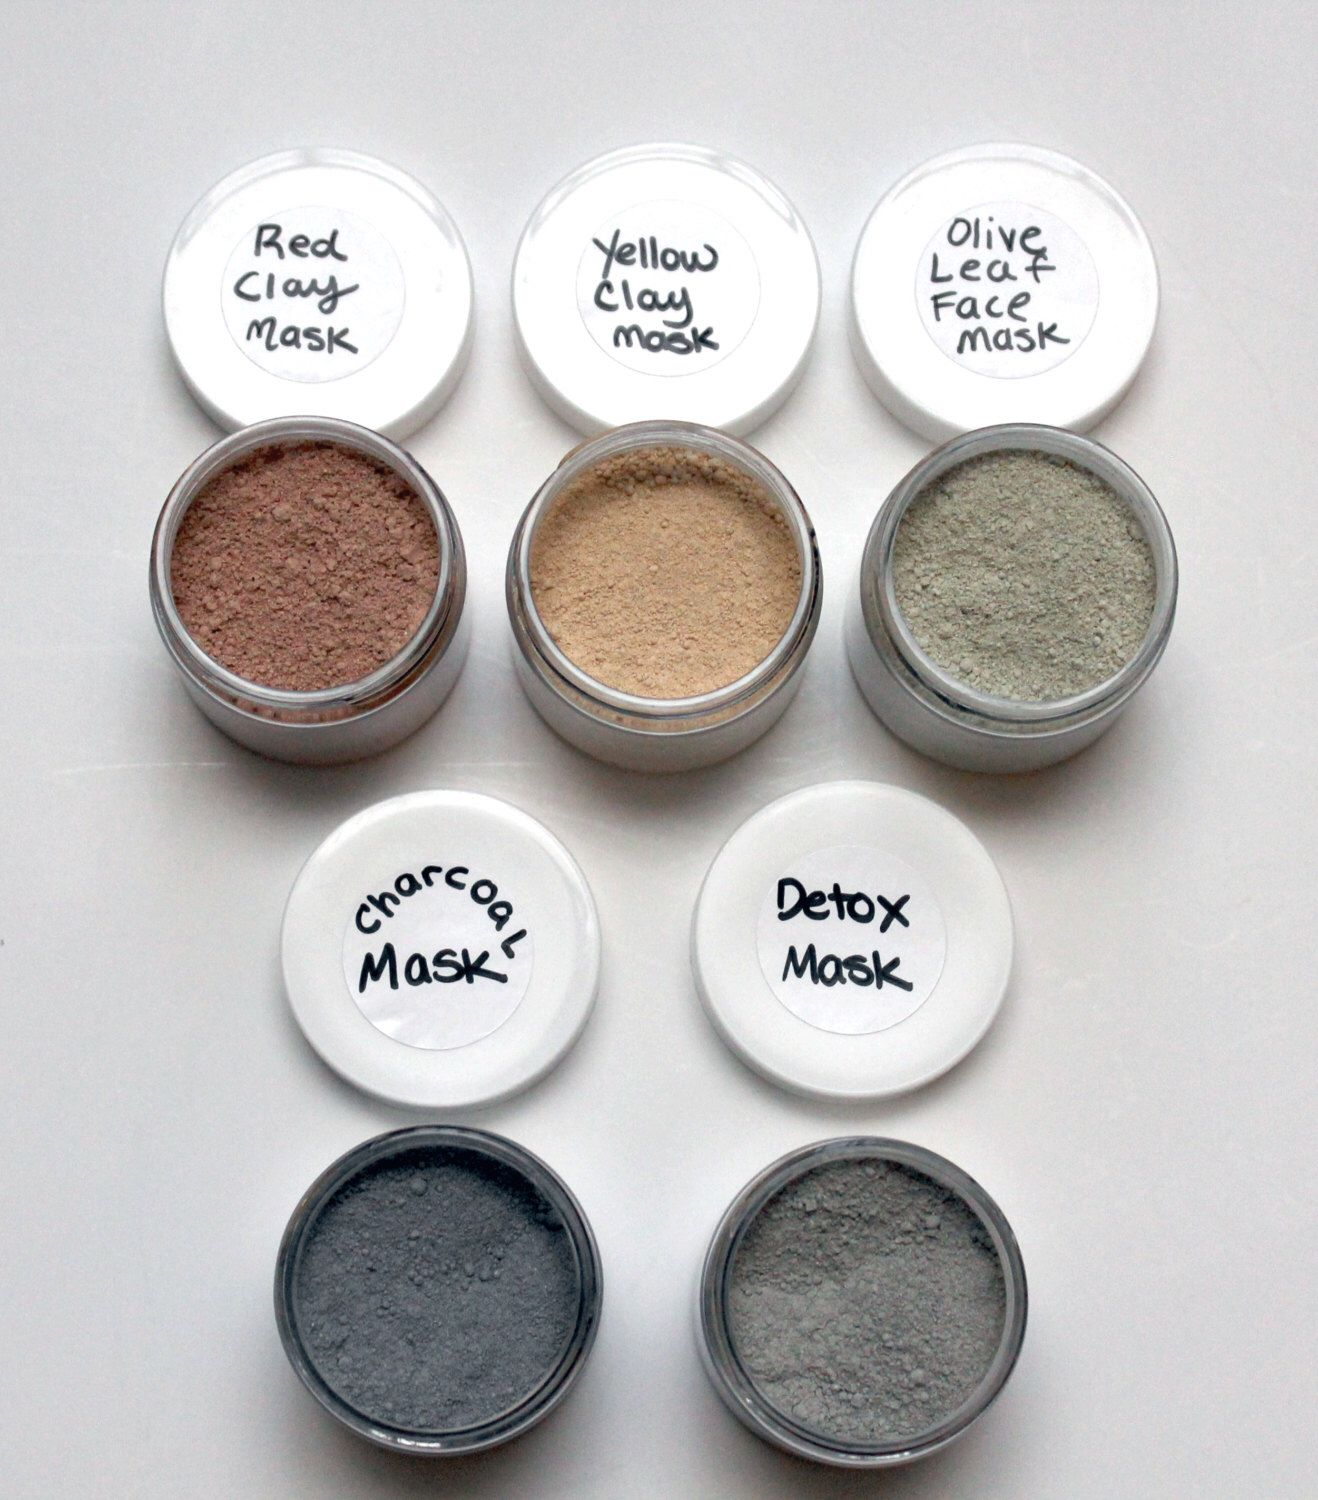 Face Mask Set, Detox Mask, Charcoal Mask, Sea Clay Mask, Acne Mask, Aging Mask, Facial Mask by BodyLovePotions on Etsy https://www.etsy.com/listing/207136708/face-mask-set-detox-mask-charcoal-mask